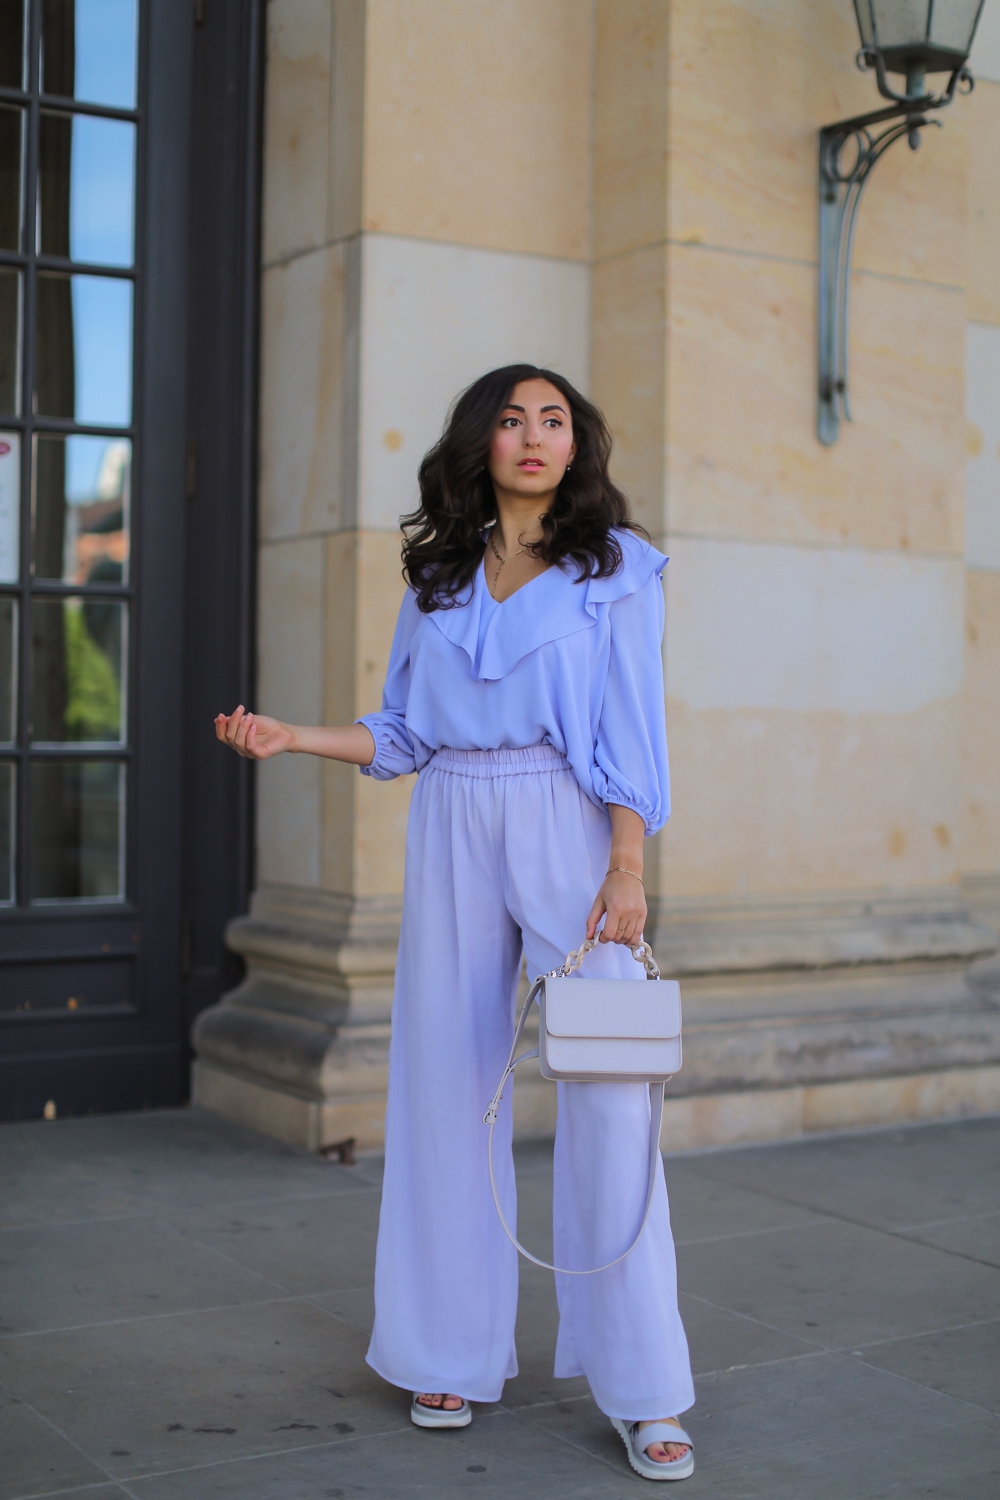 all lilac outfit palazzo pants styling lavender cai jewellery schmuck pearly ear cuff summer style 2020 berlin samieze